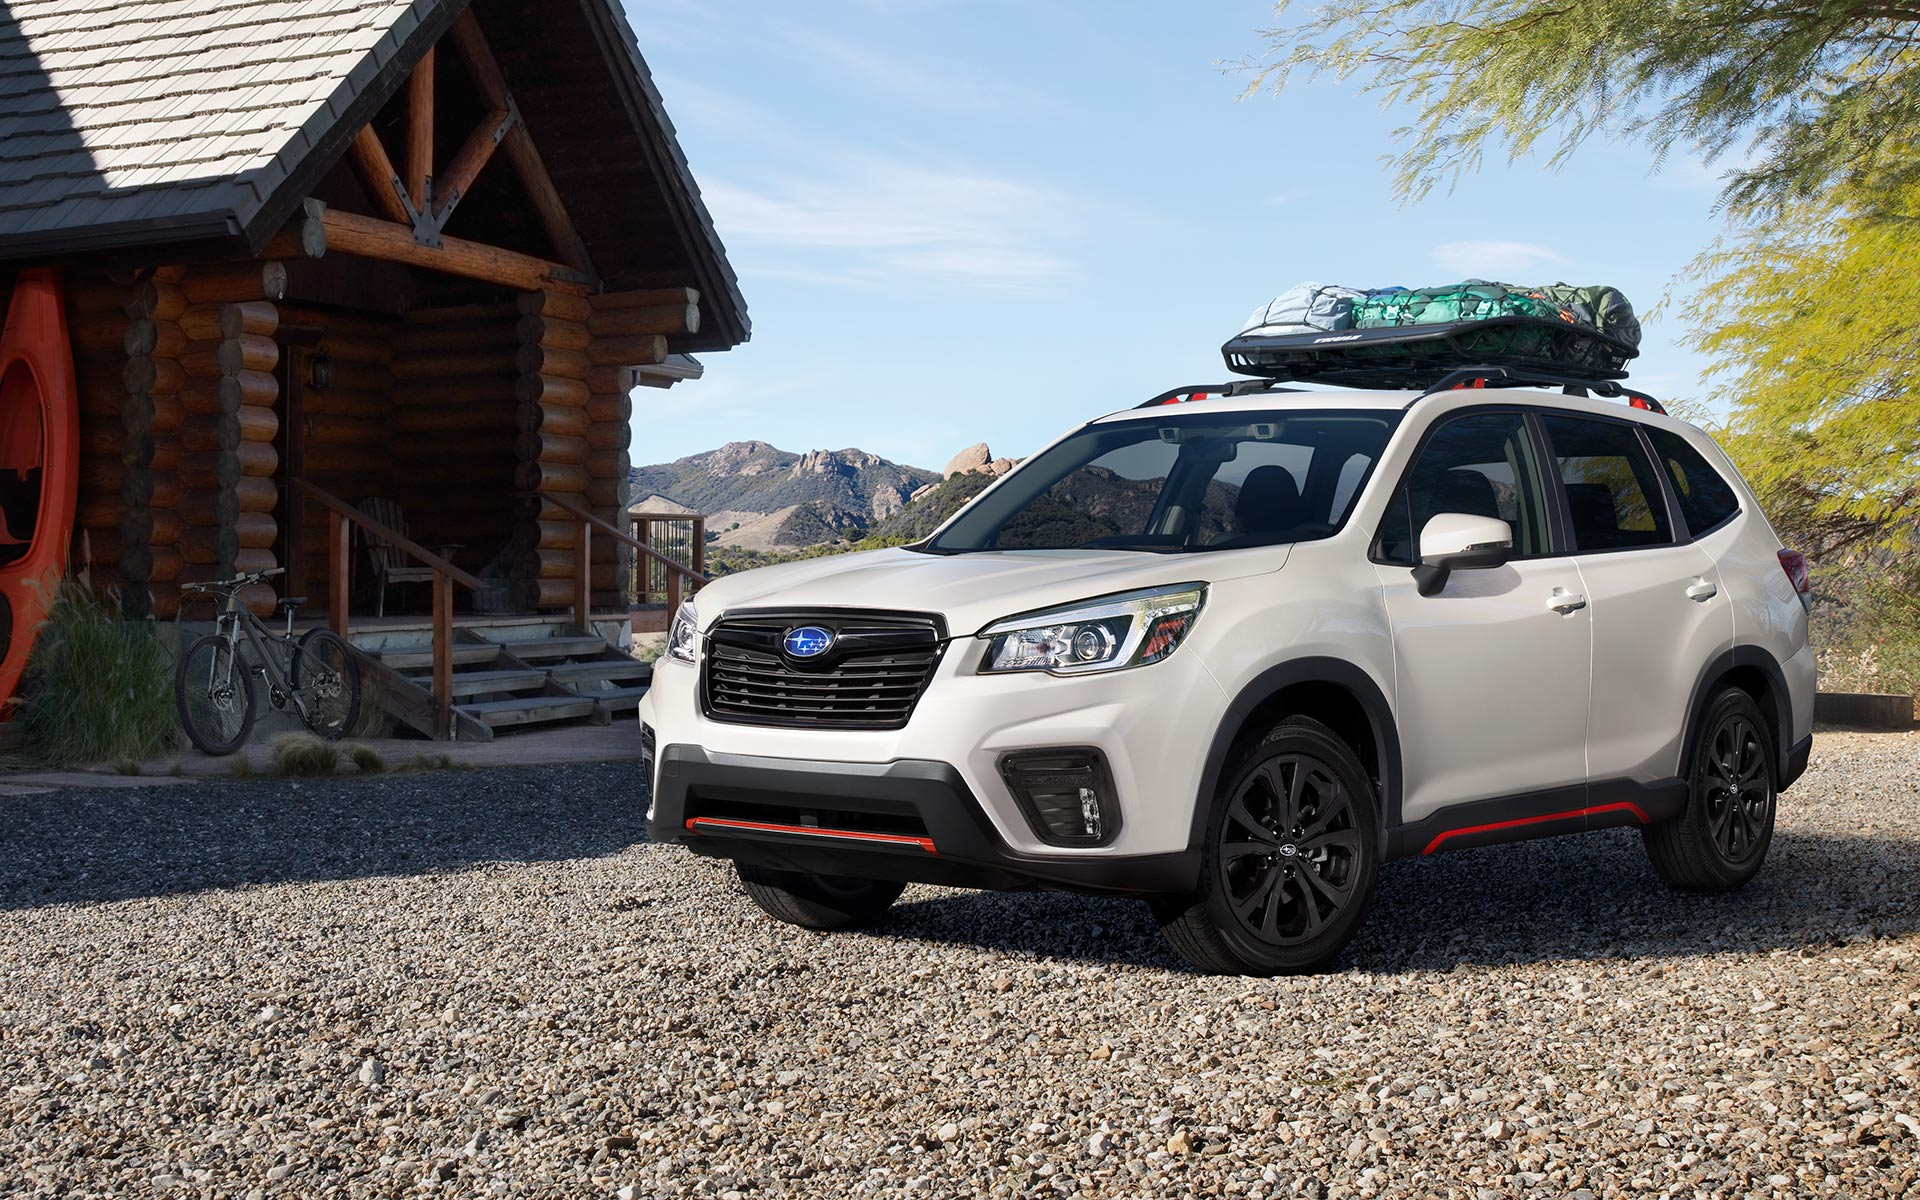 Staten Island Subaru Forester 2019 Coming Soon